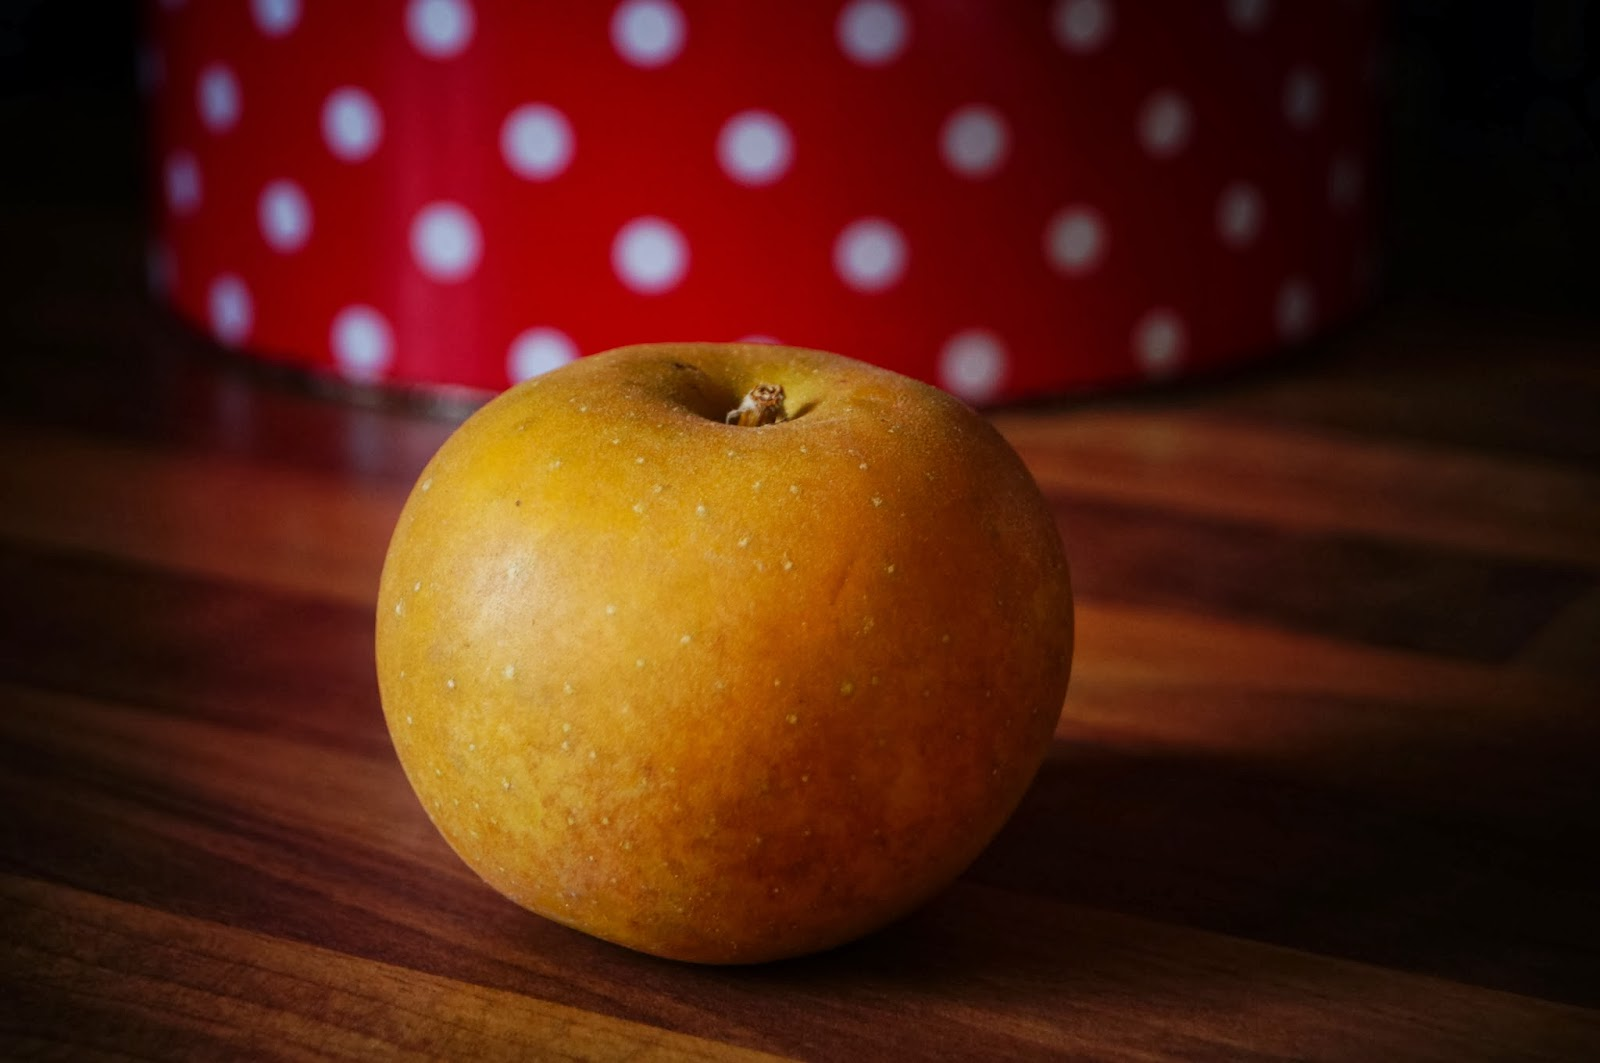 Egremont Russet Apple - 'Grow Our Own' Allotment Blog